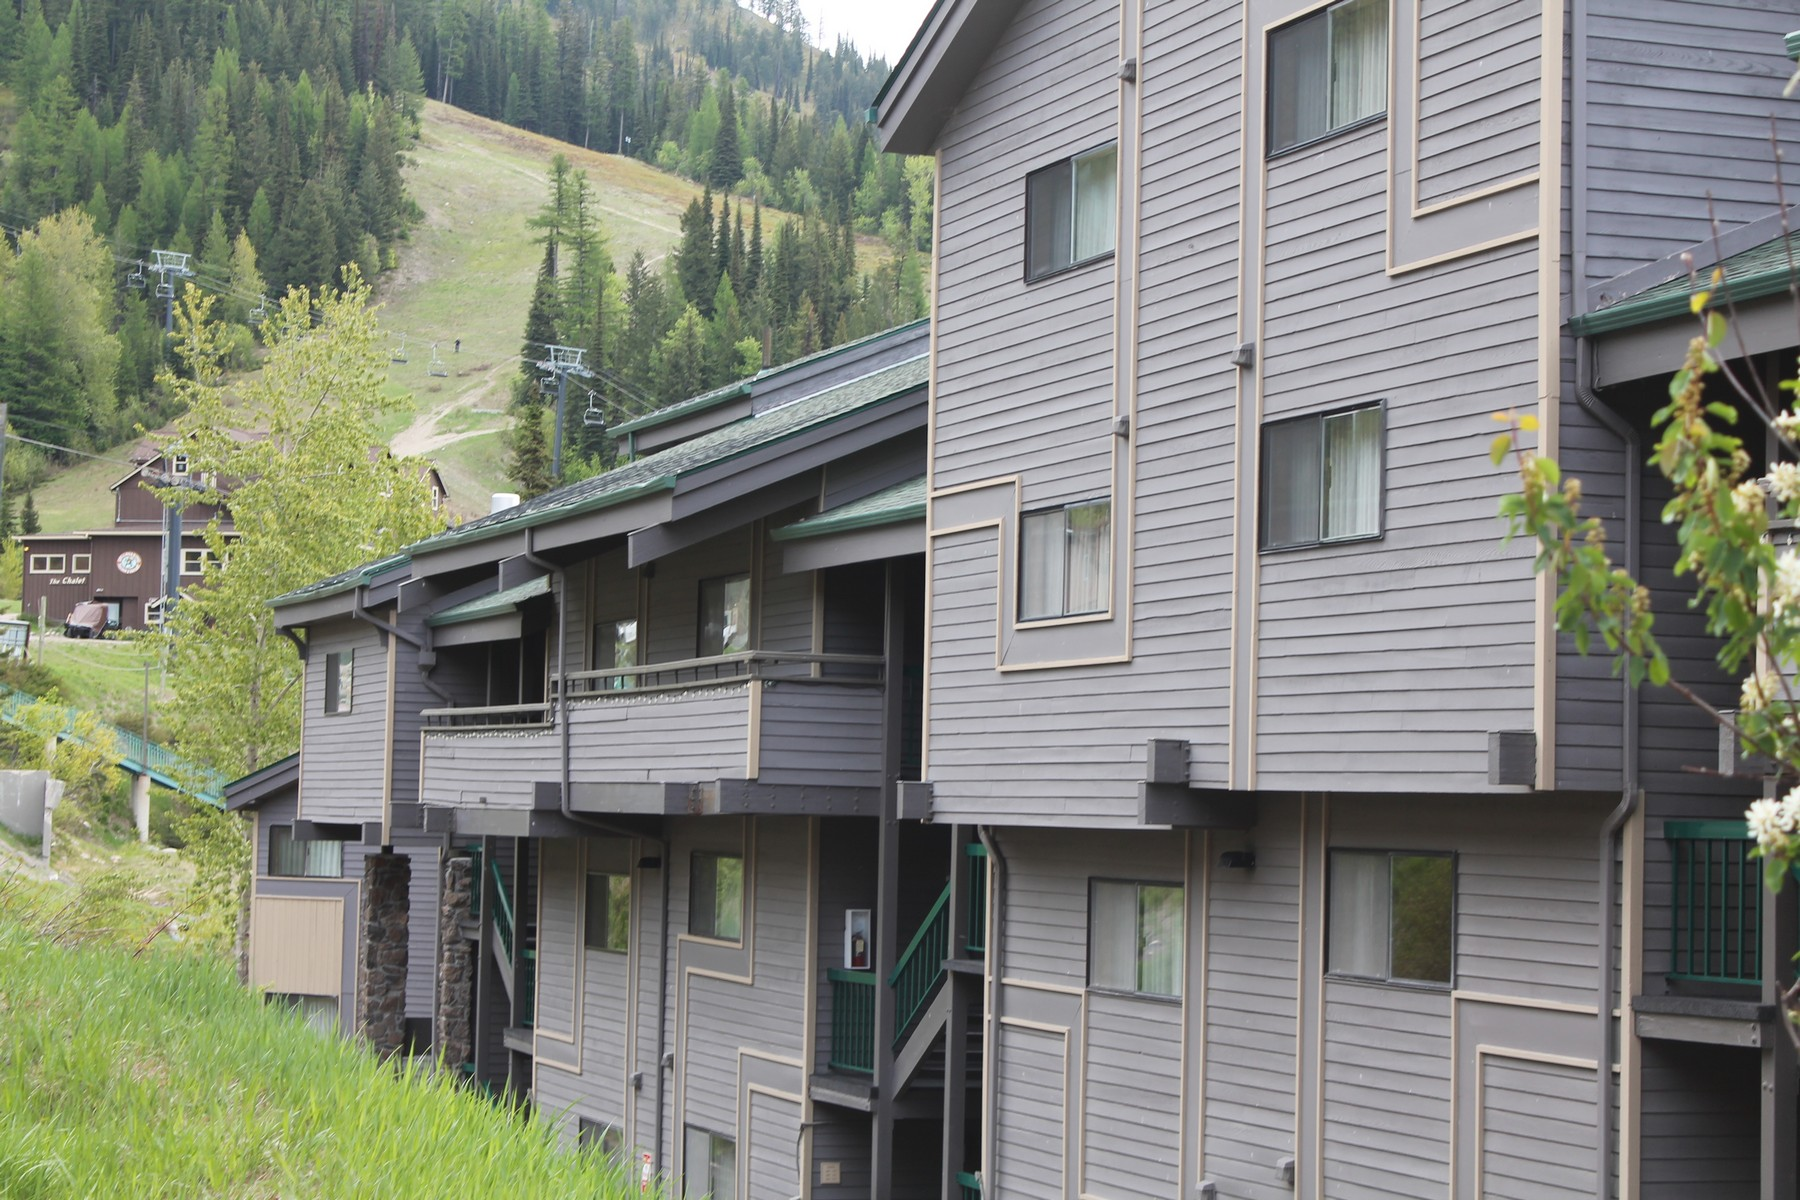 Condominium for Sale at 3898 Big Mountain Road, Edelweiss 211 3898 Big Mountain Rd 211 Eidelweiss Whitefish, Montana 59937 United States